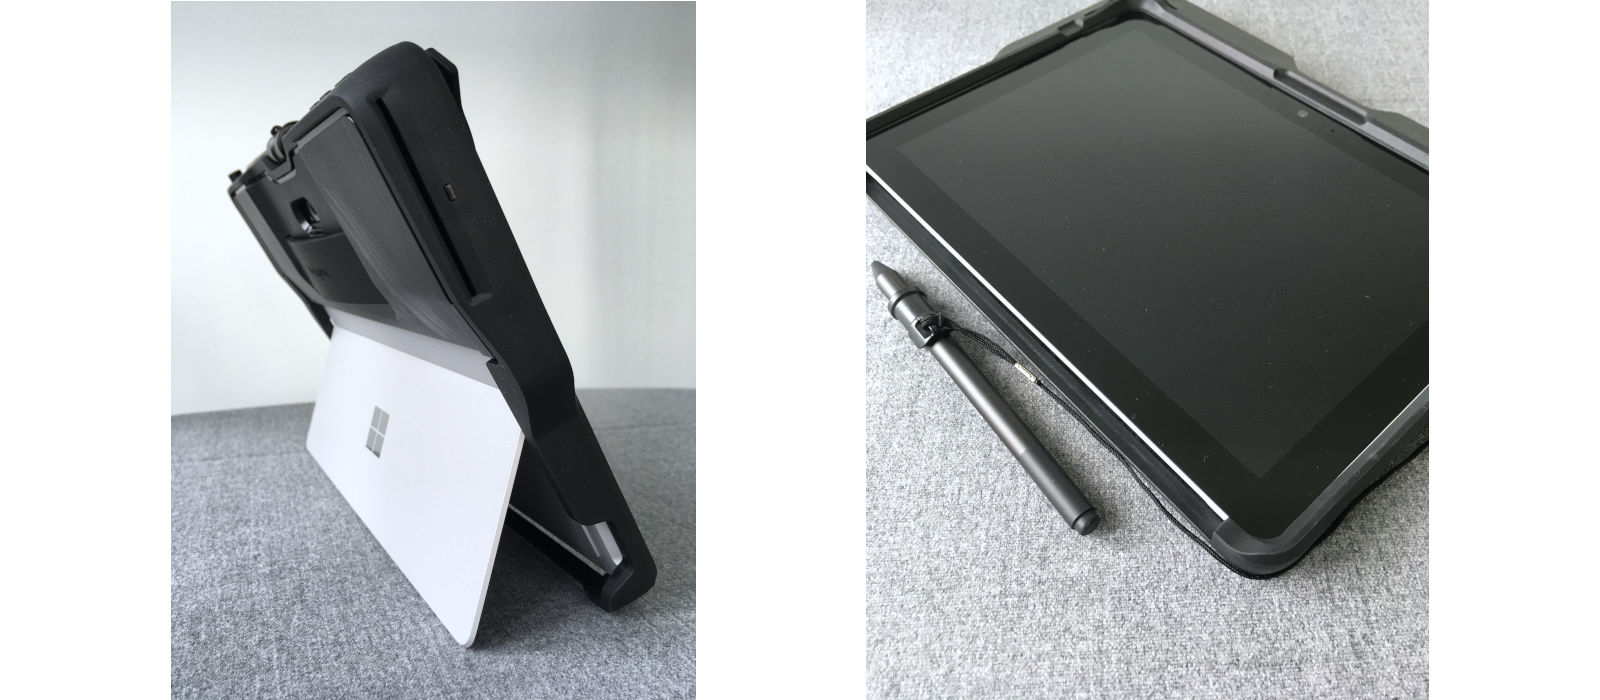 The Kensington® BlackBelt™ Rugged Case for the Surface Go and Surface Go 2 with CAC card reader and pen holder for the Surface Pen